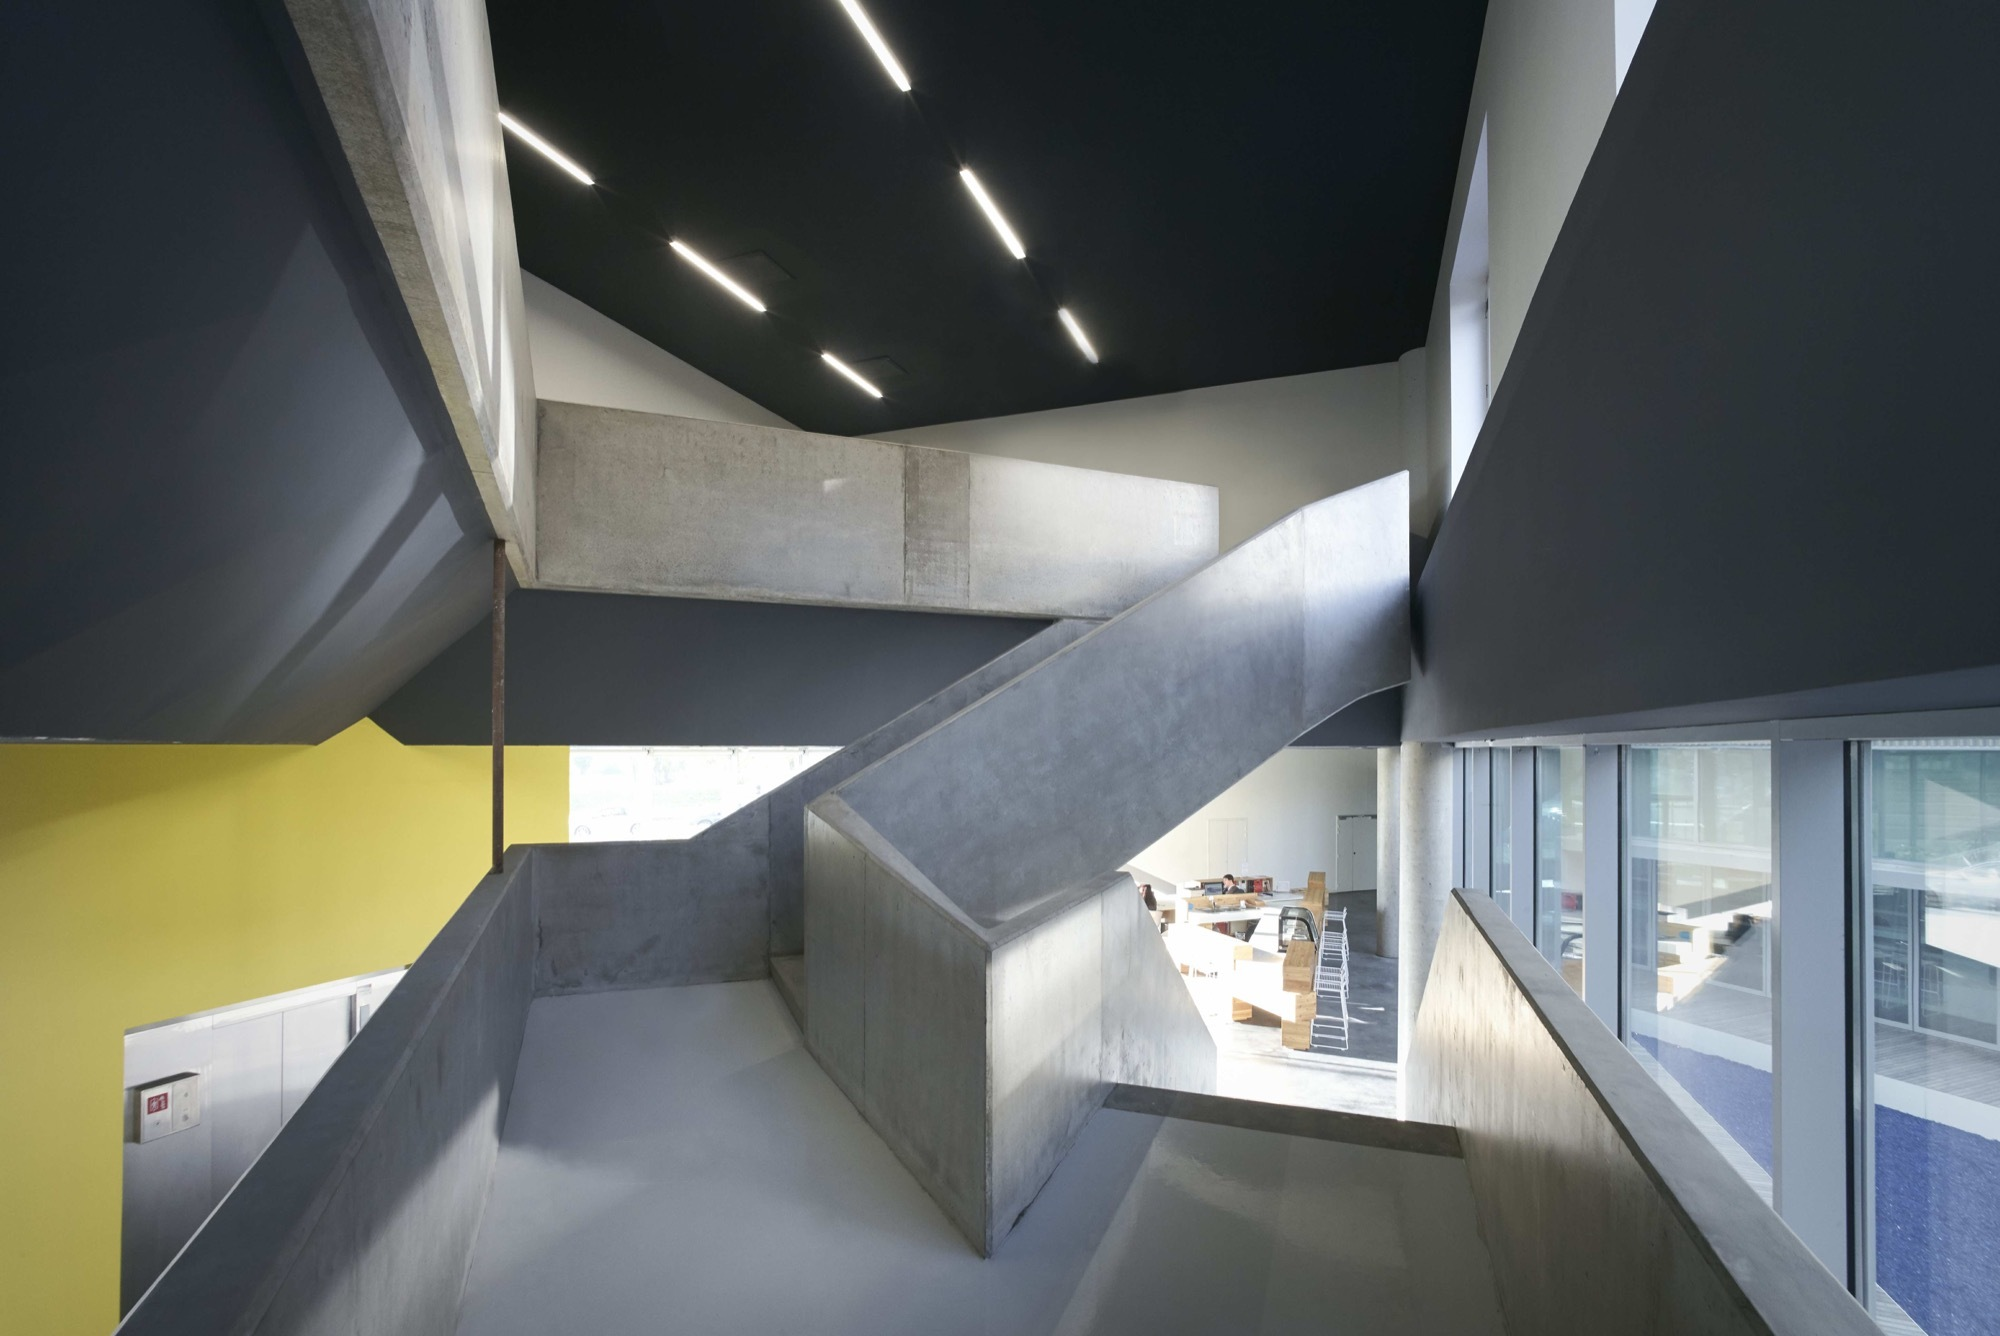 Gallery of maison st phane hessel jds architects 2 for Auberge de jeunesse la maison paris